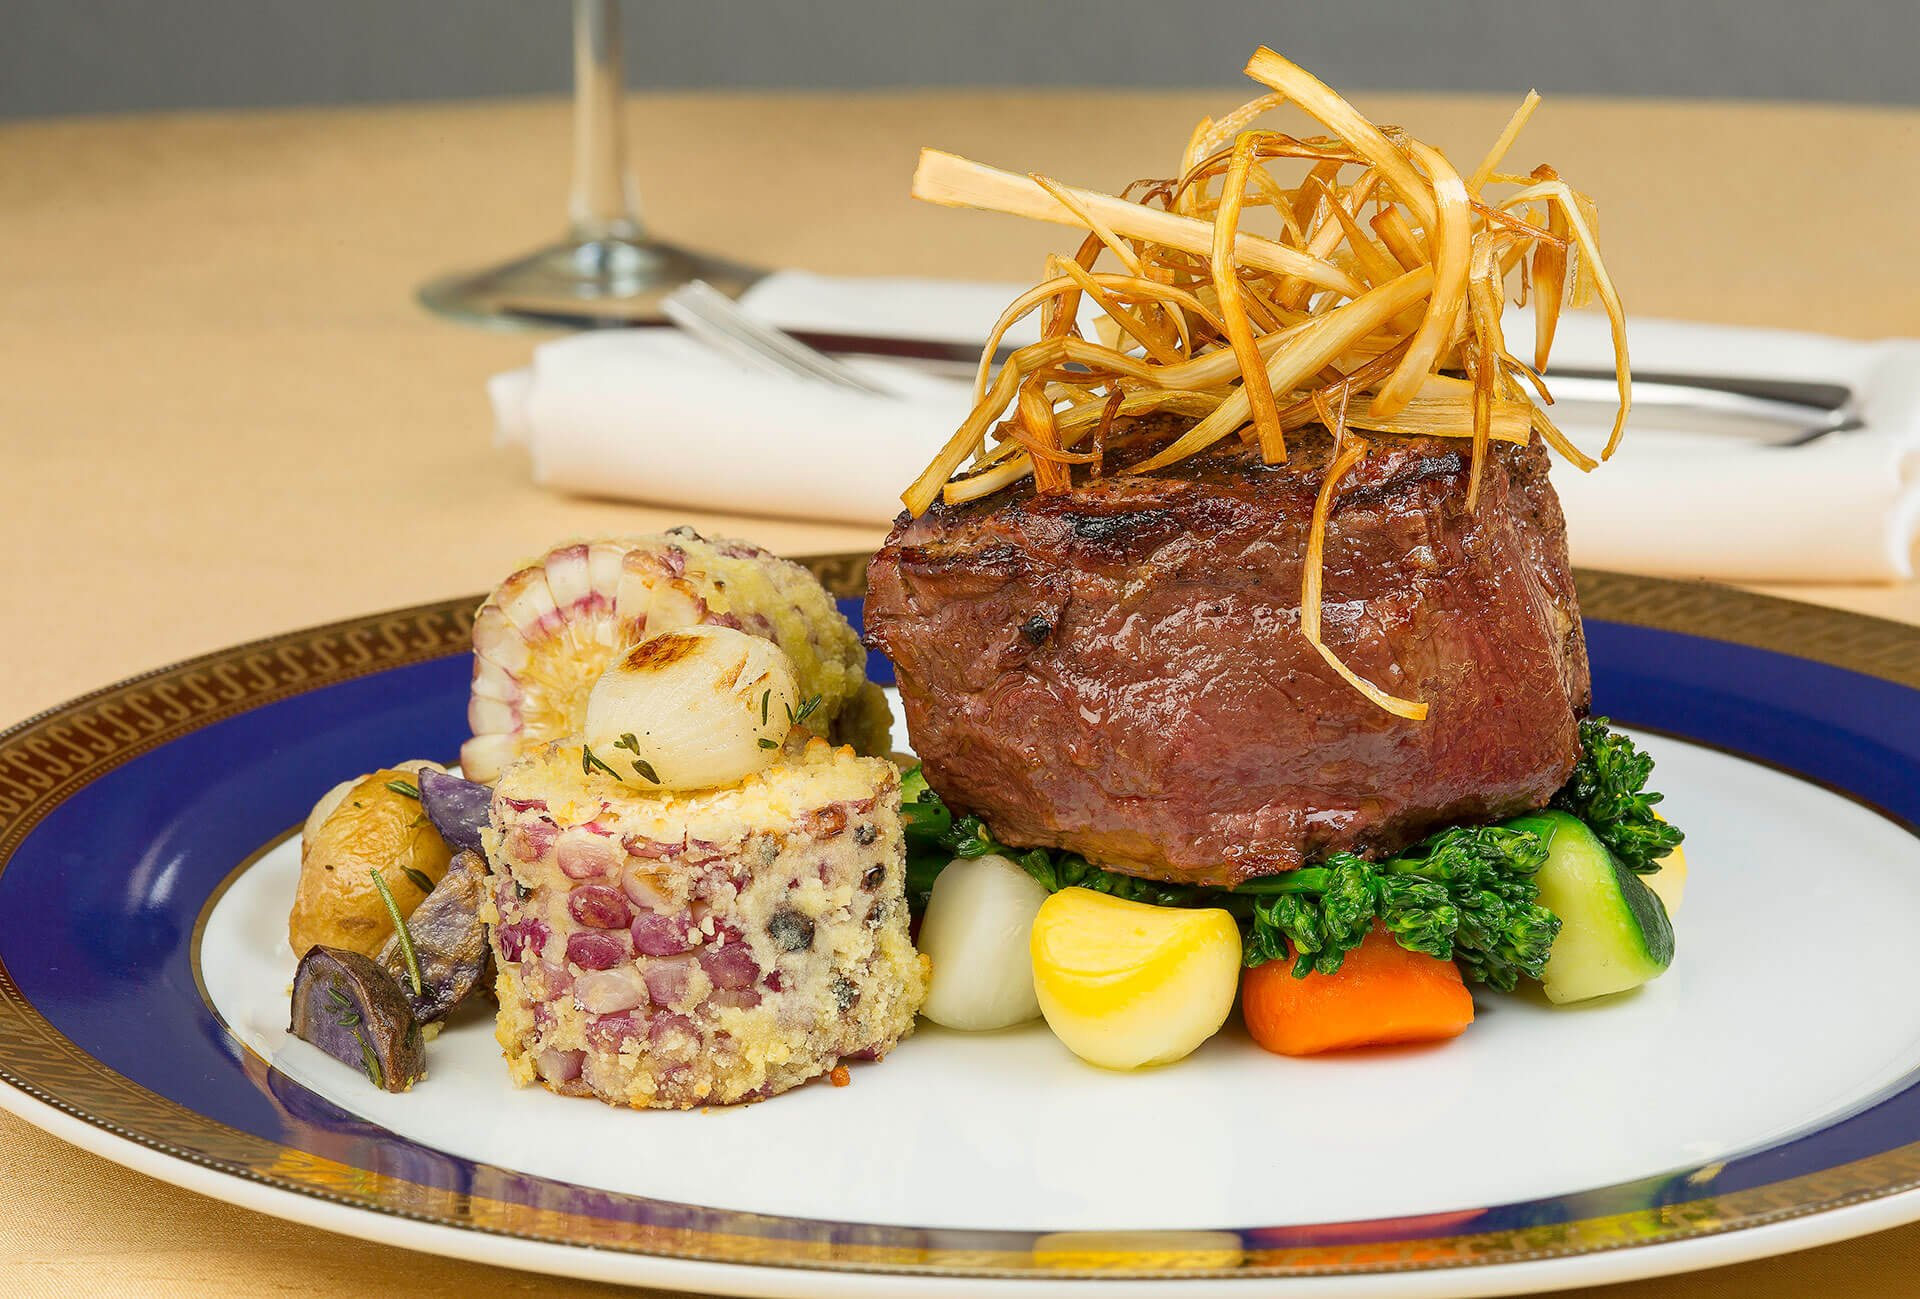 Grilled filet mignon with mexican corn on the cob, roasted rosemary peruvian and golden potatoes, deep fried leek hay, parisienne vegetables and broccoli rabe